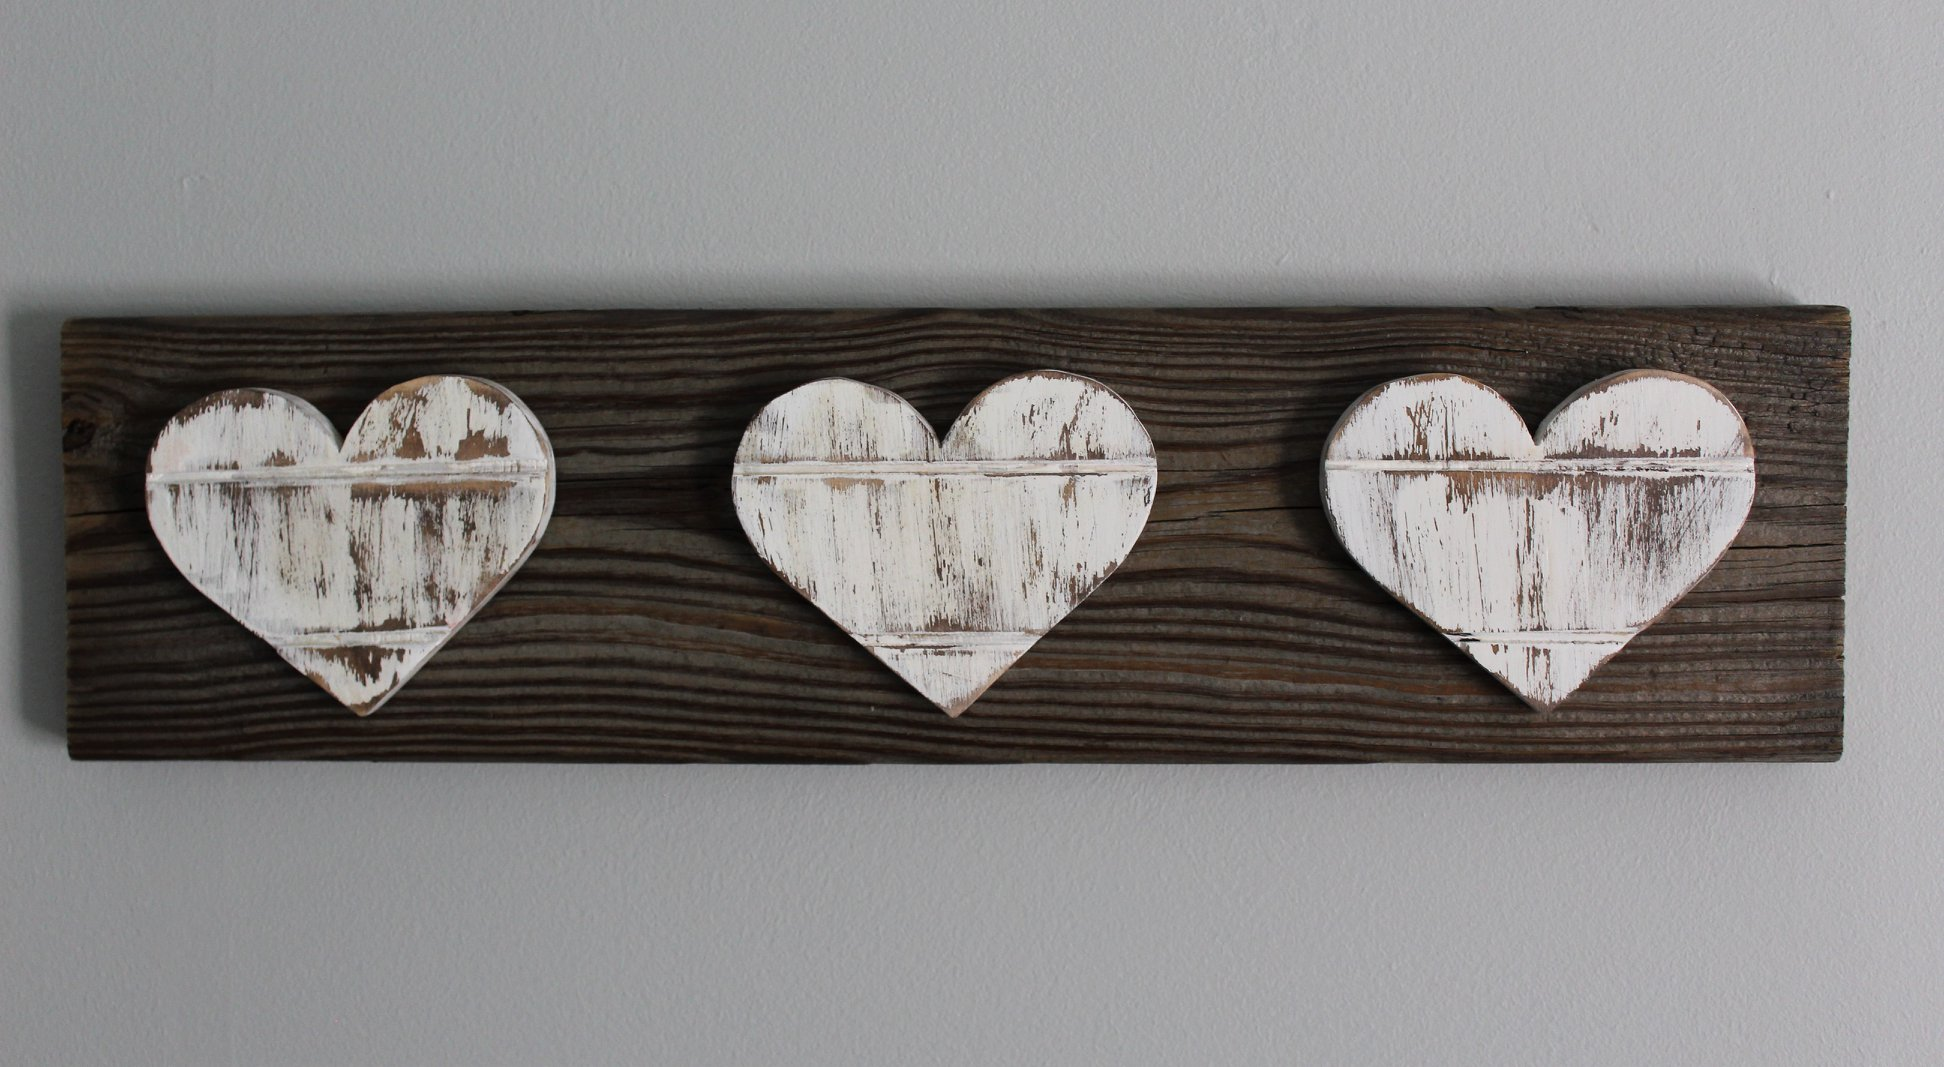 Image of Three Wooden Hearts